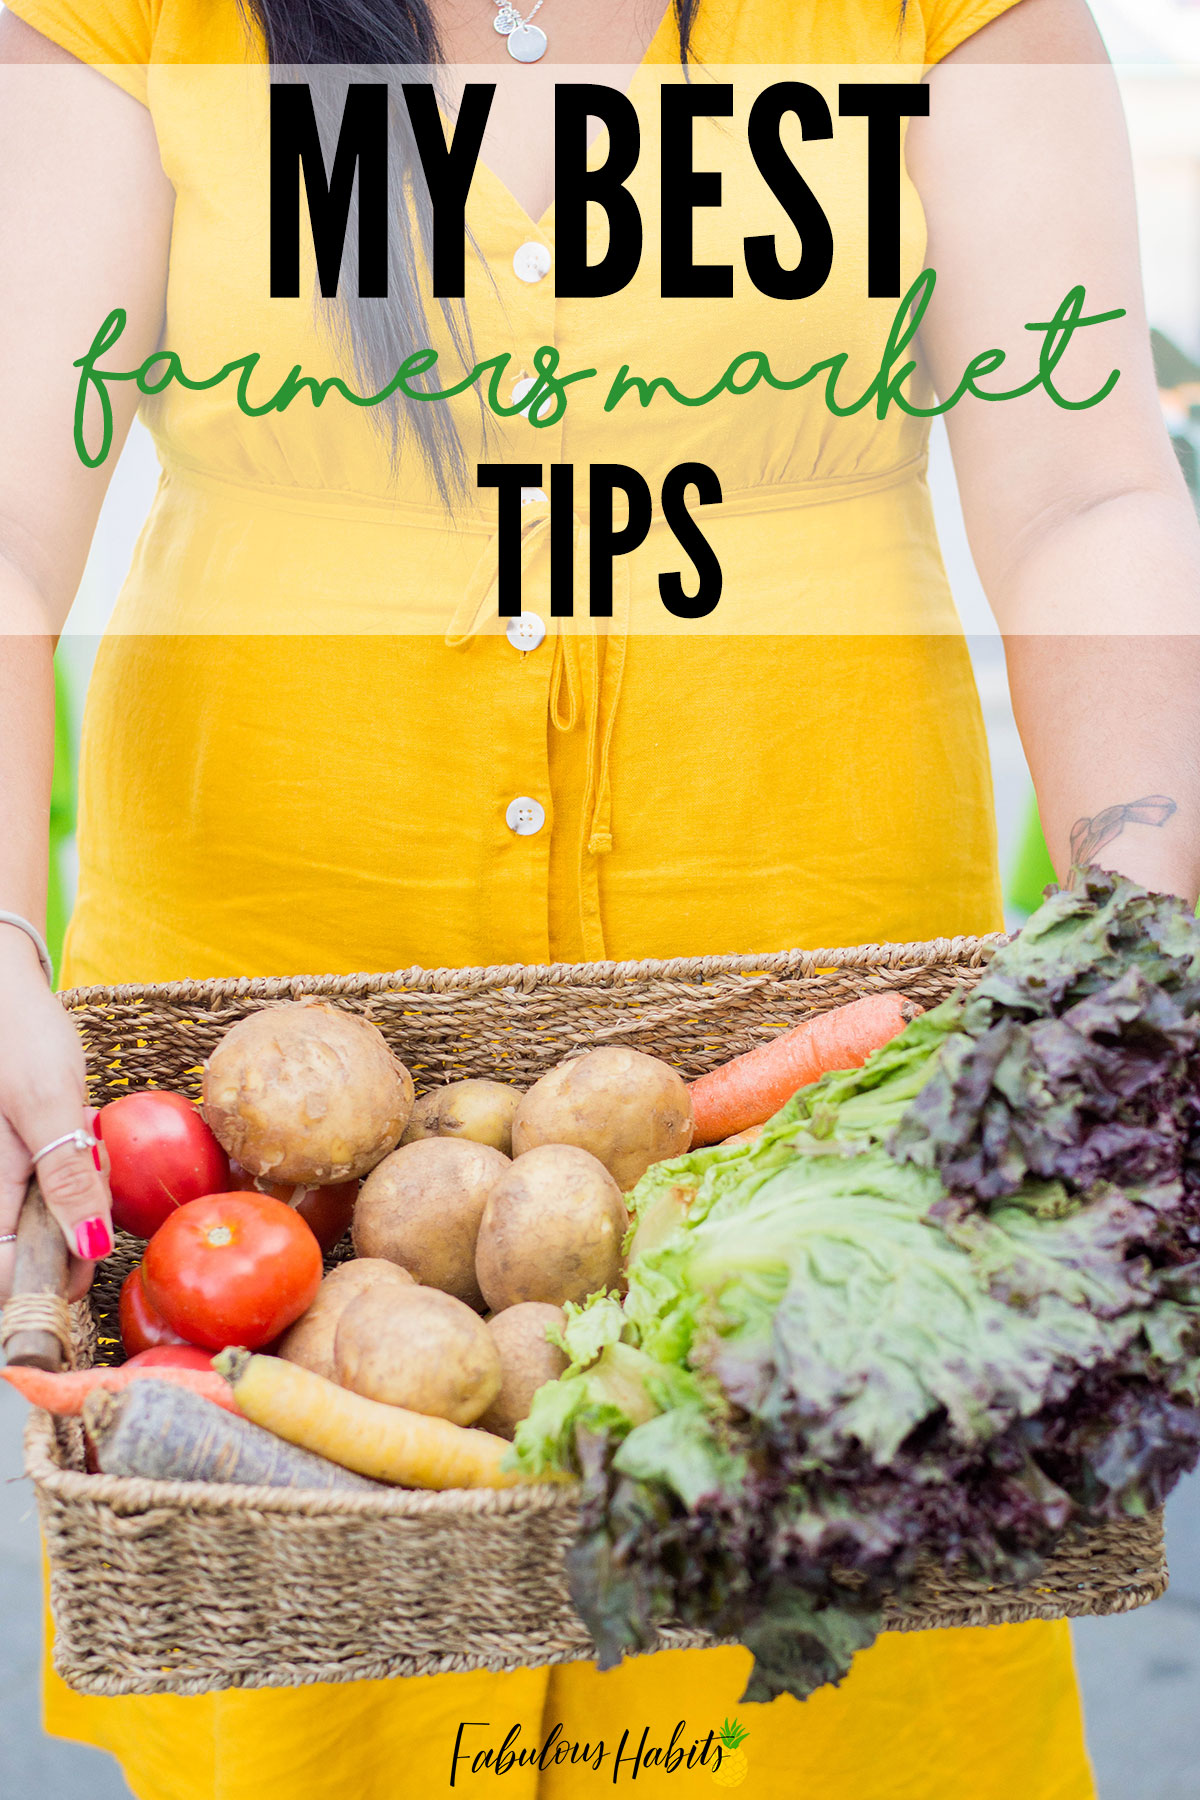 I've rounded up all of my best farmers market shopping tips - so that you can navigate your local market with ease. Everyone always loves a trip to the farmers market! (My husband included - wow!) #farmersmarket #eatlocal